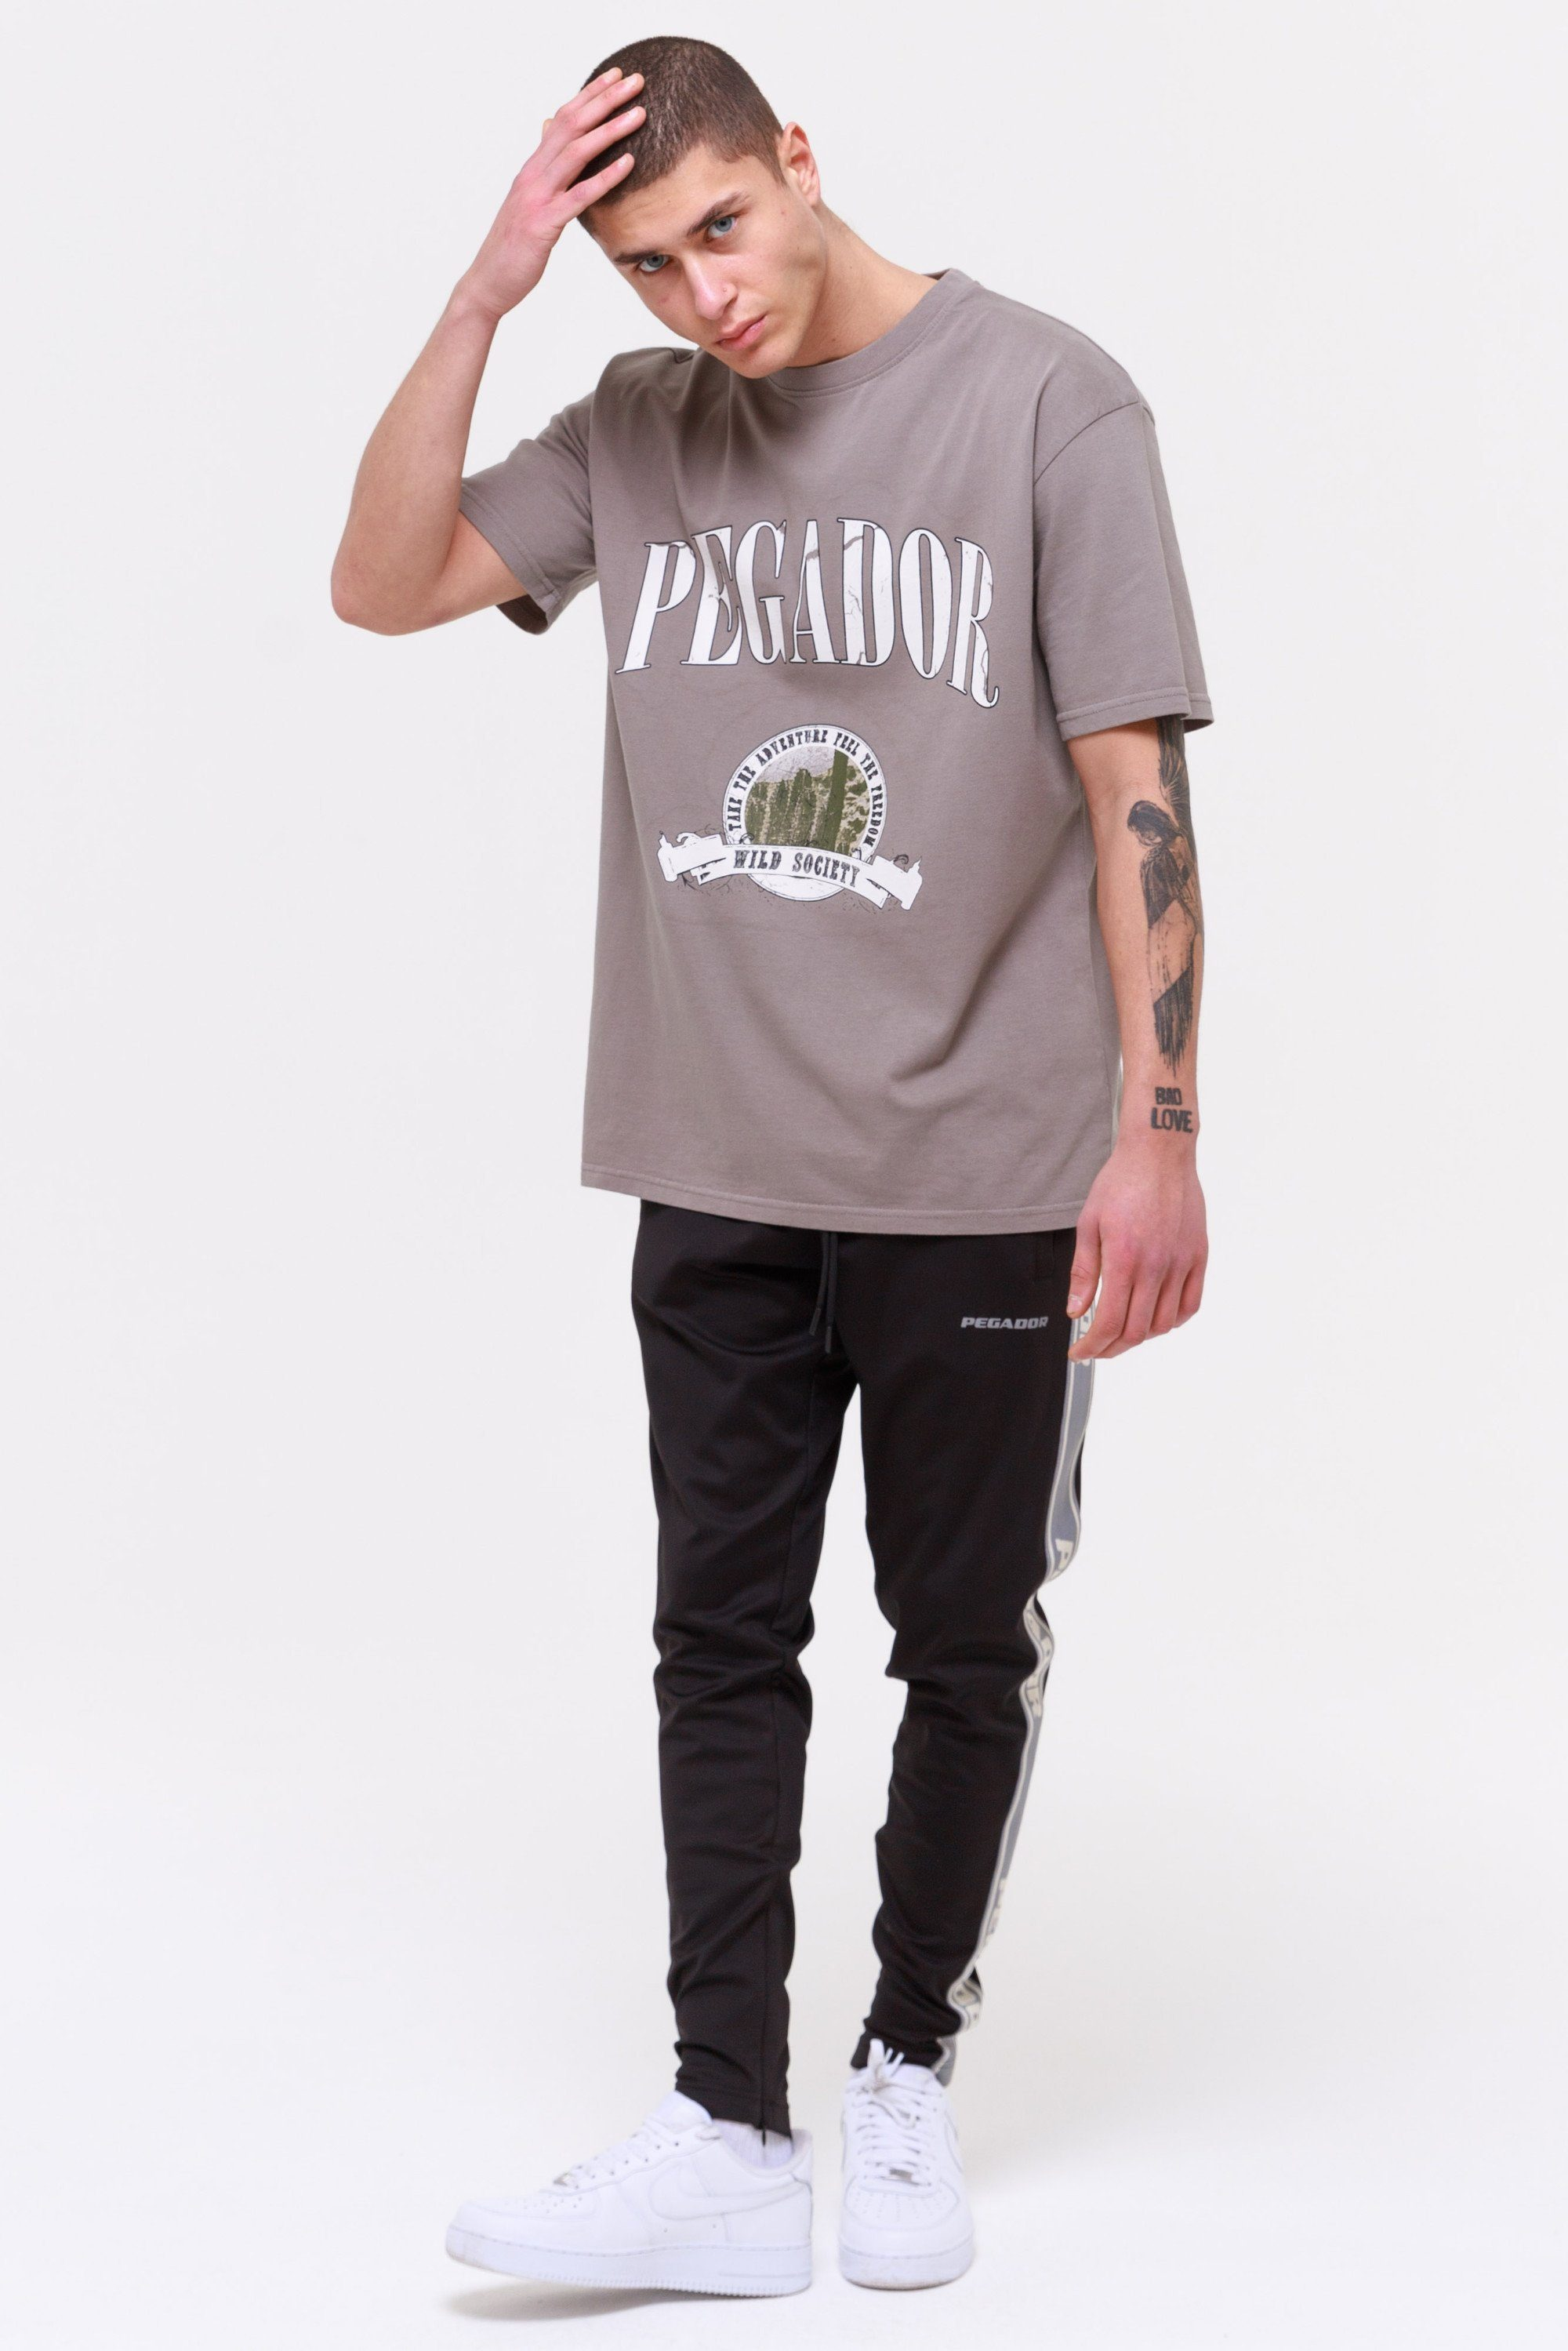 Utah Oversized Tee Washed Frost Grey T-SHIRT Wild Society